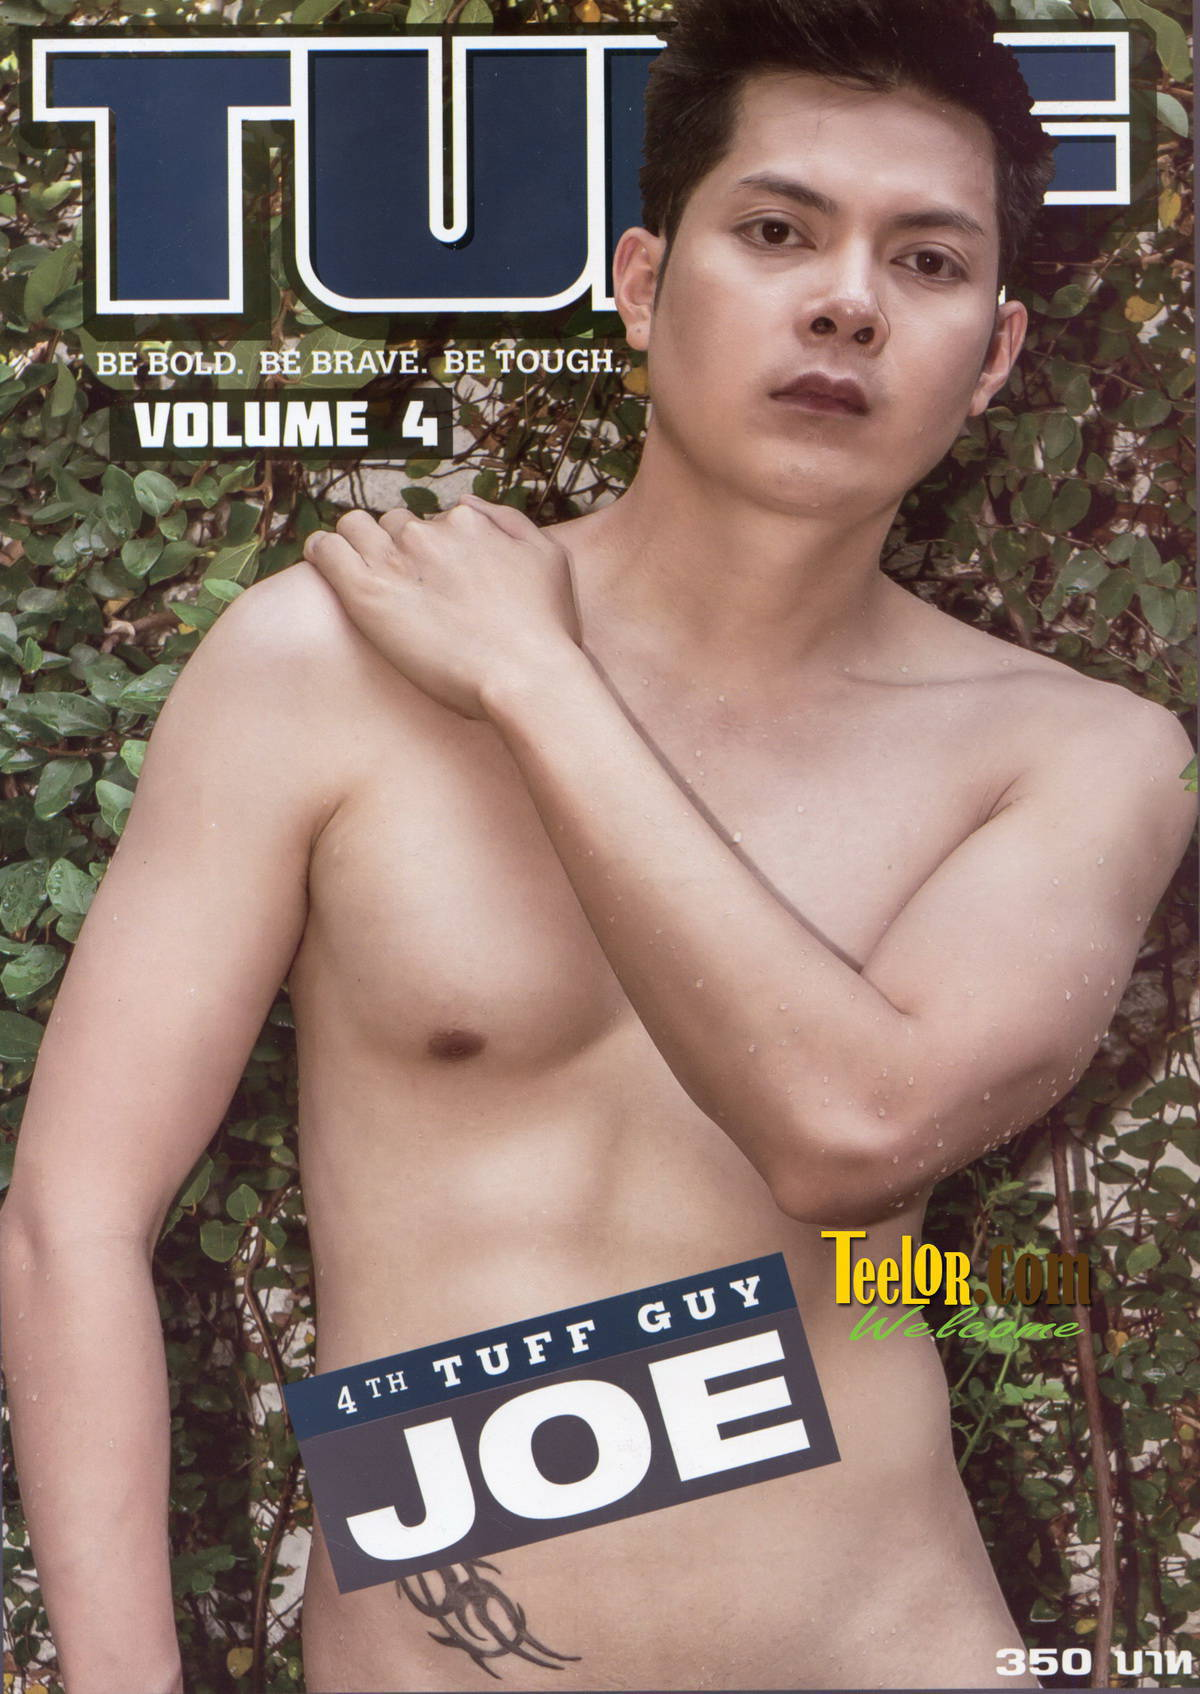 TUFF vol.1 no.4 May 2014